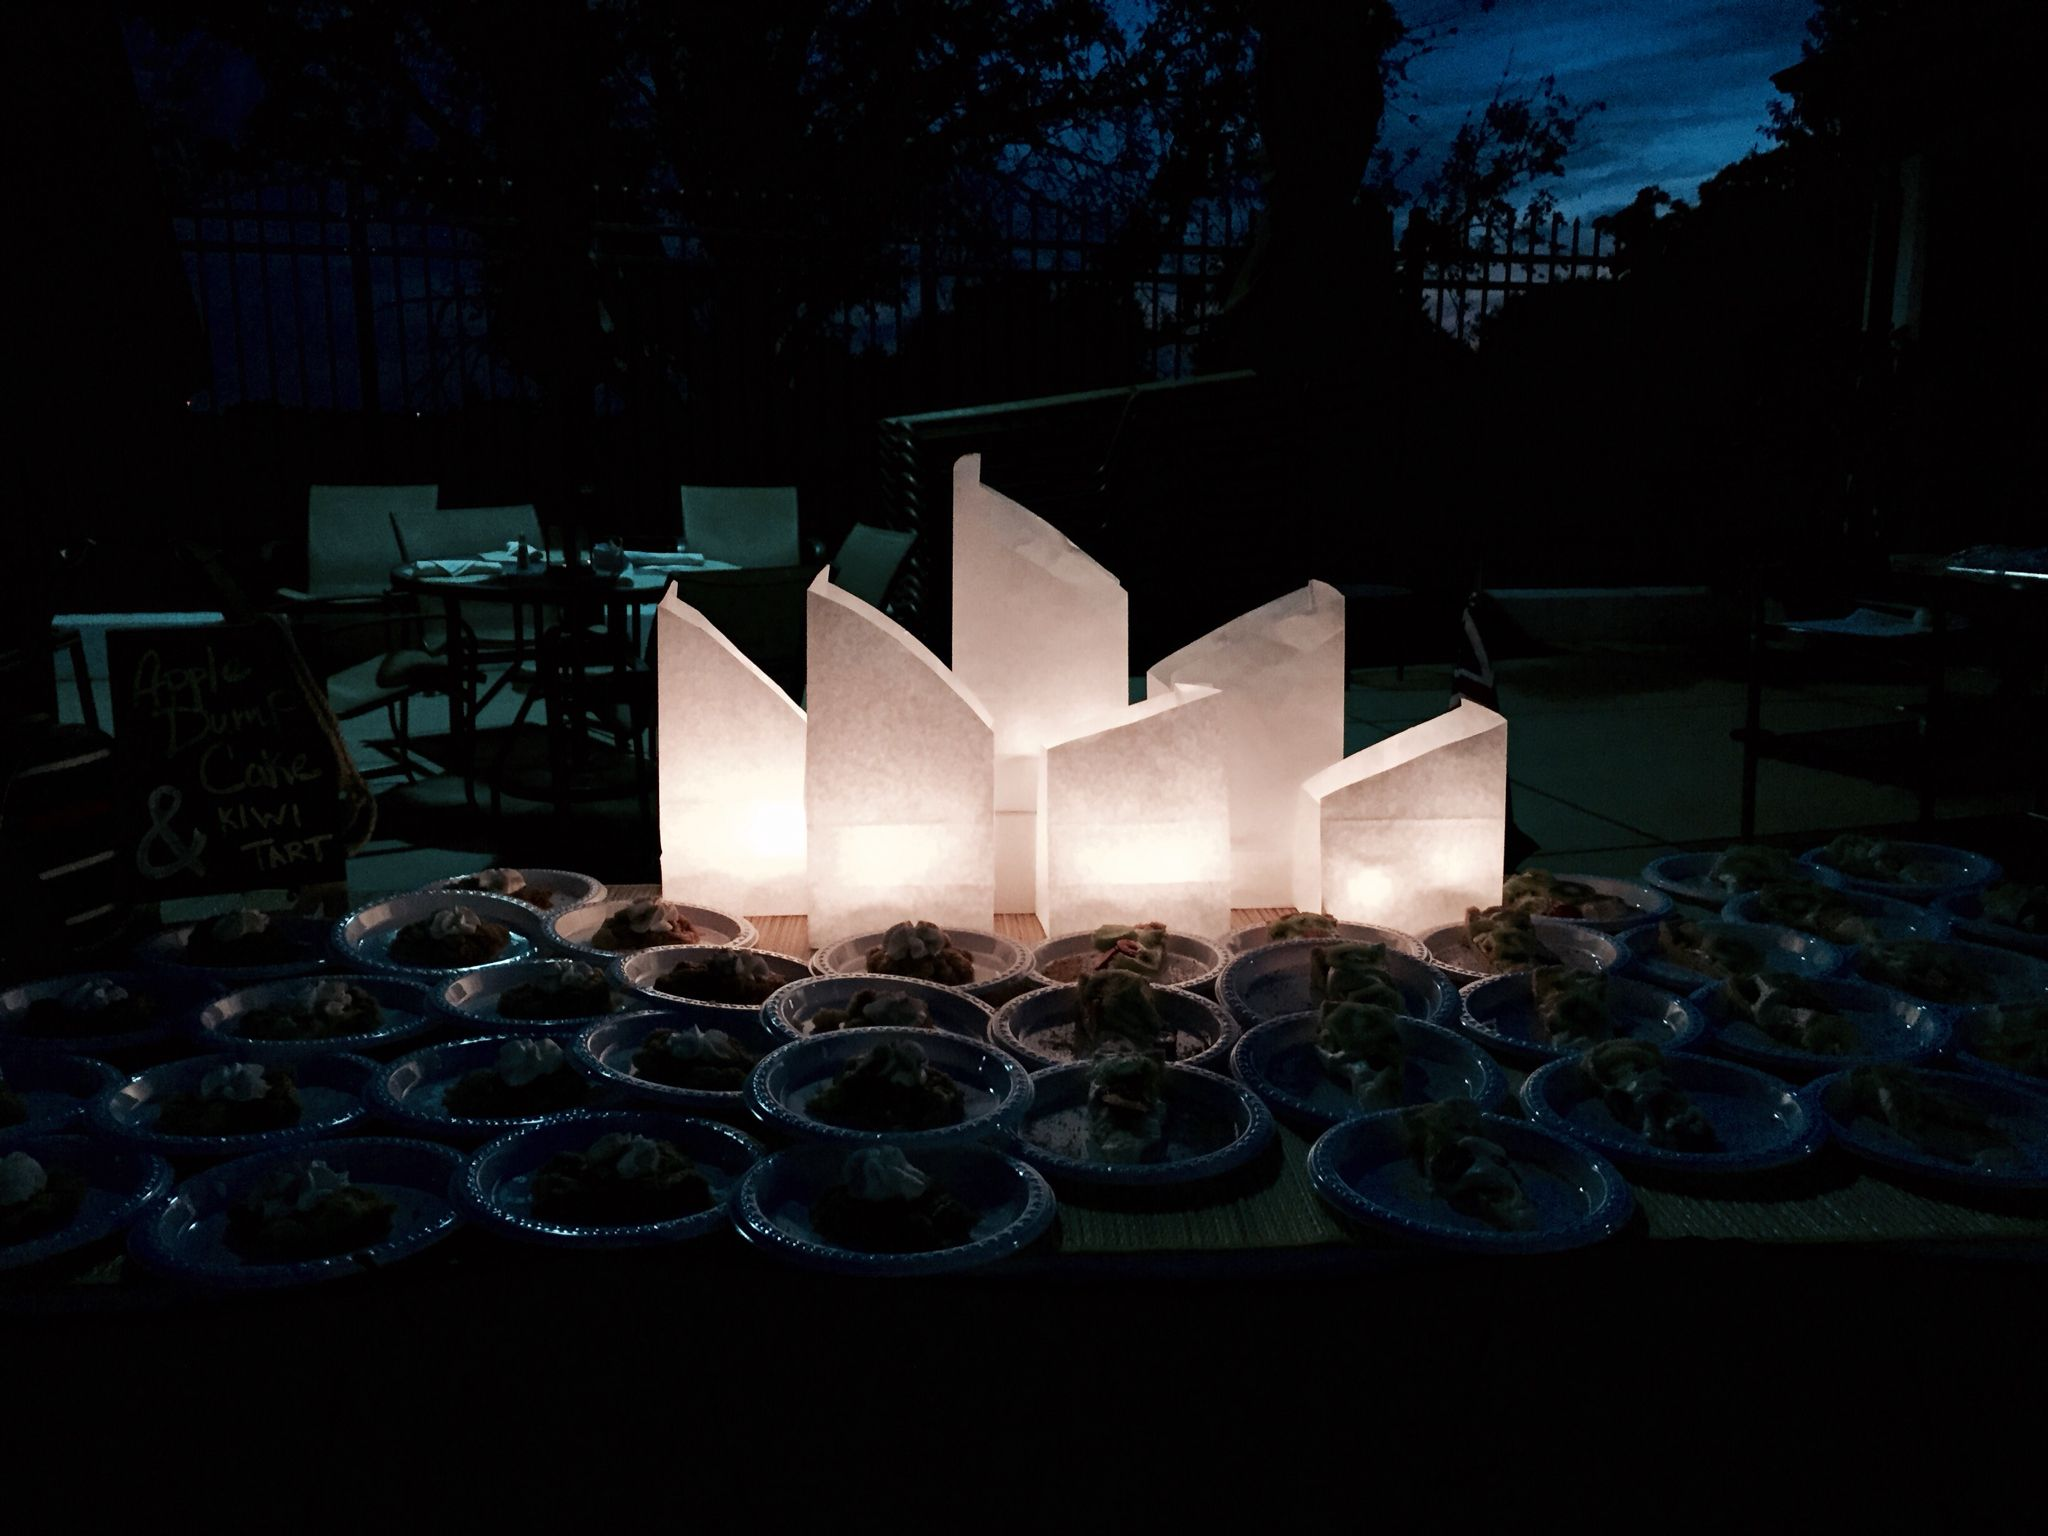 Australian outback theme party buffet...Sydney opera house with paper bag luminaries